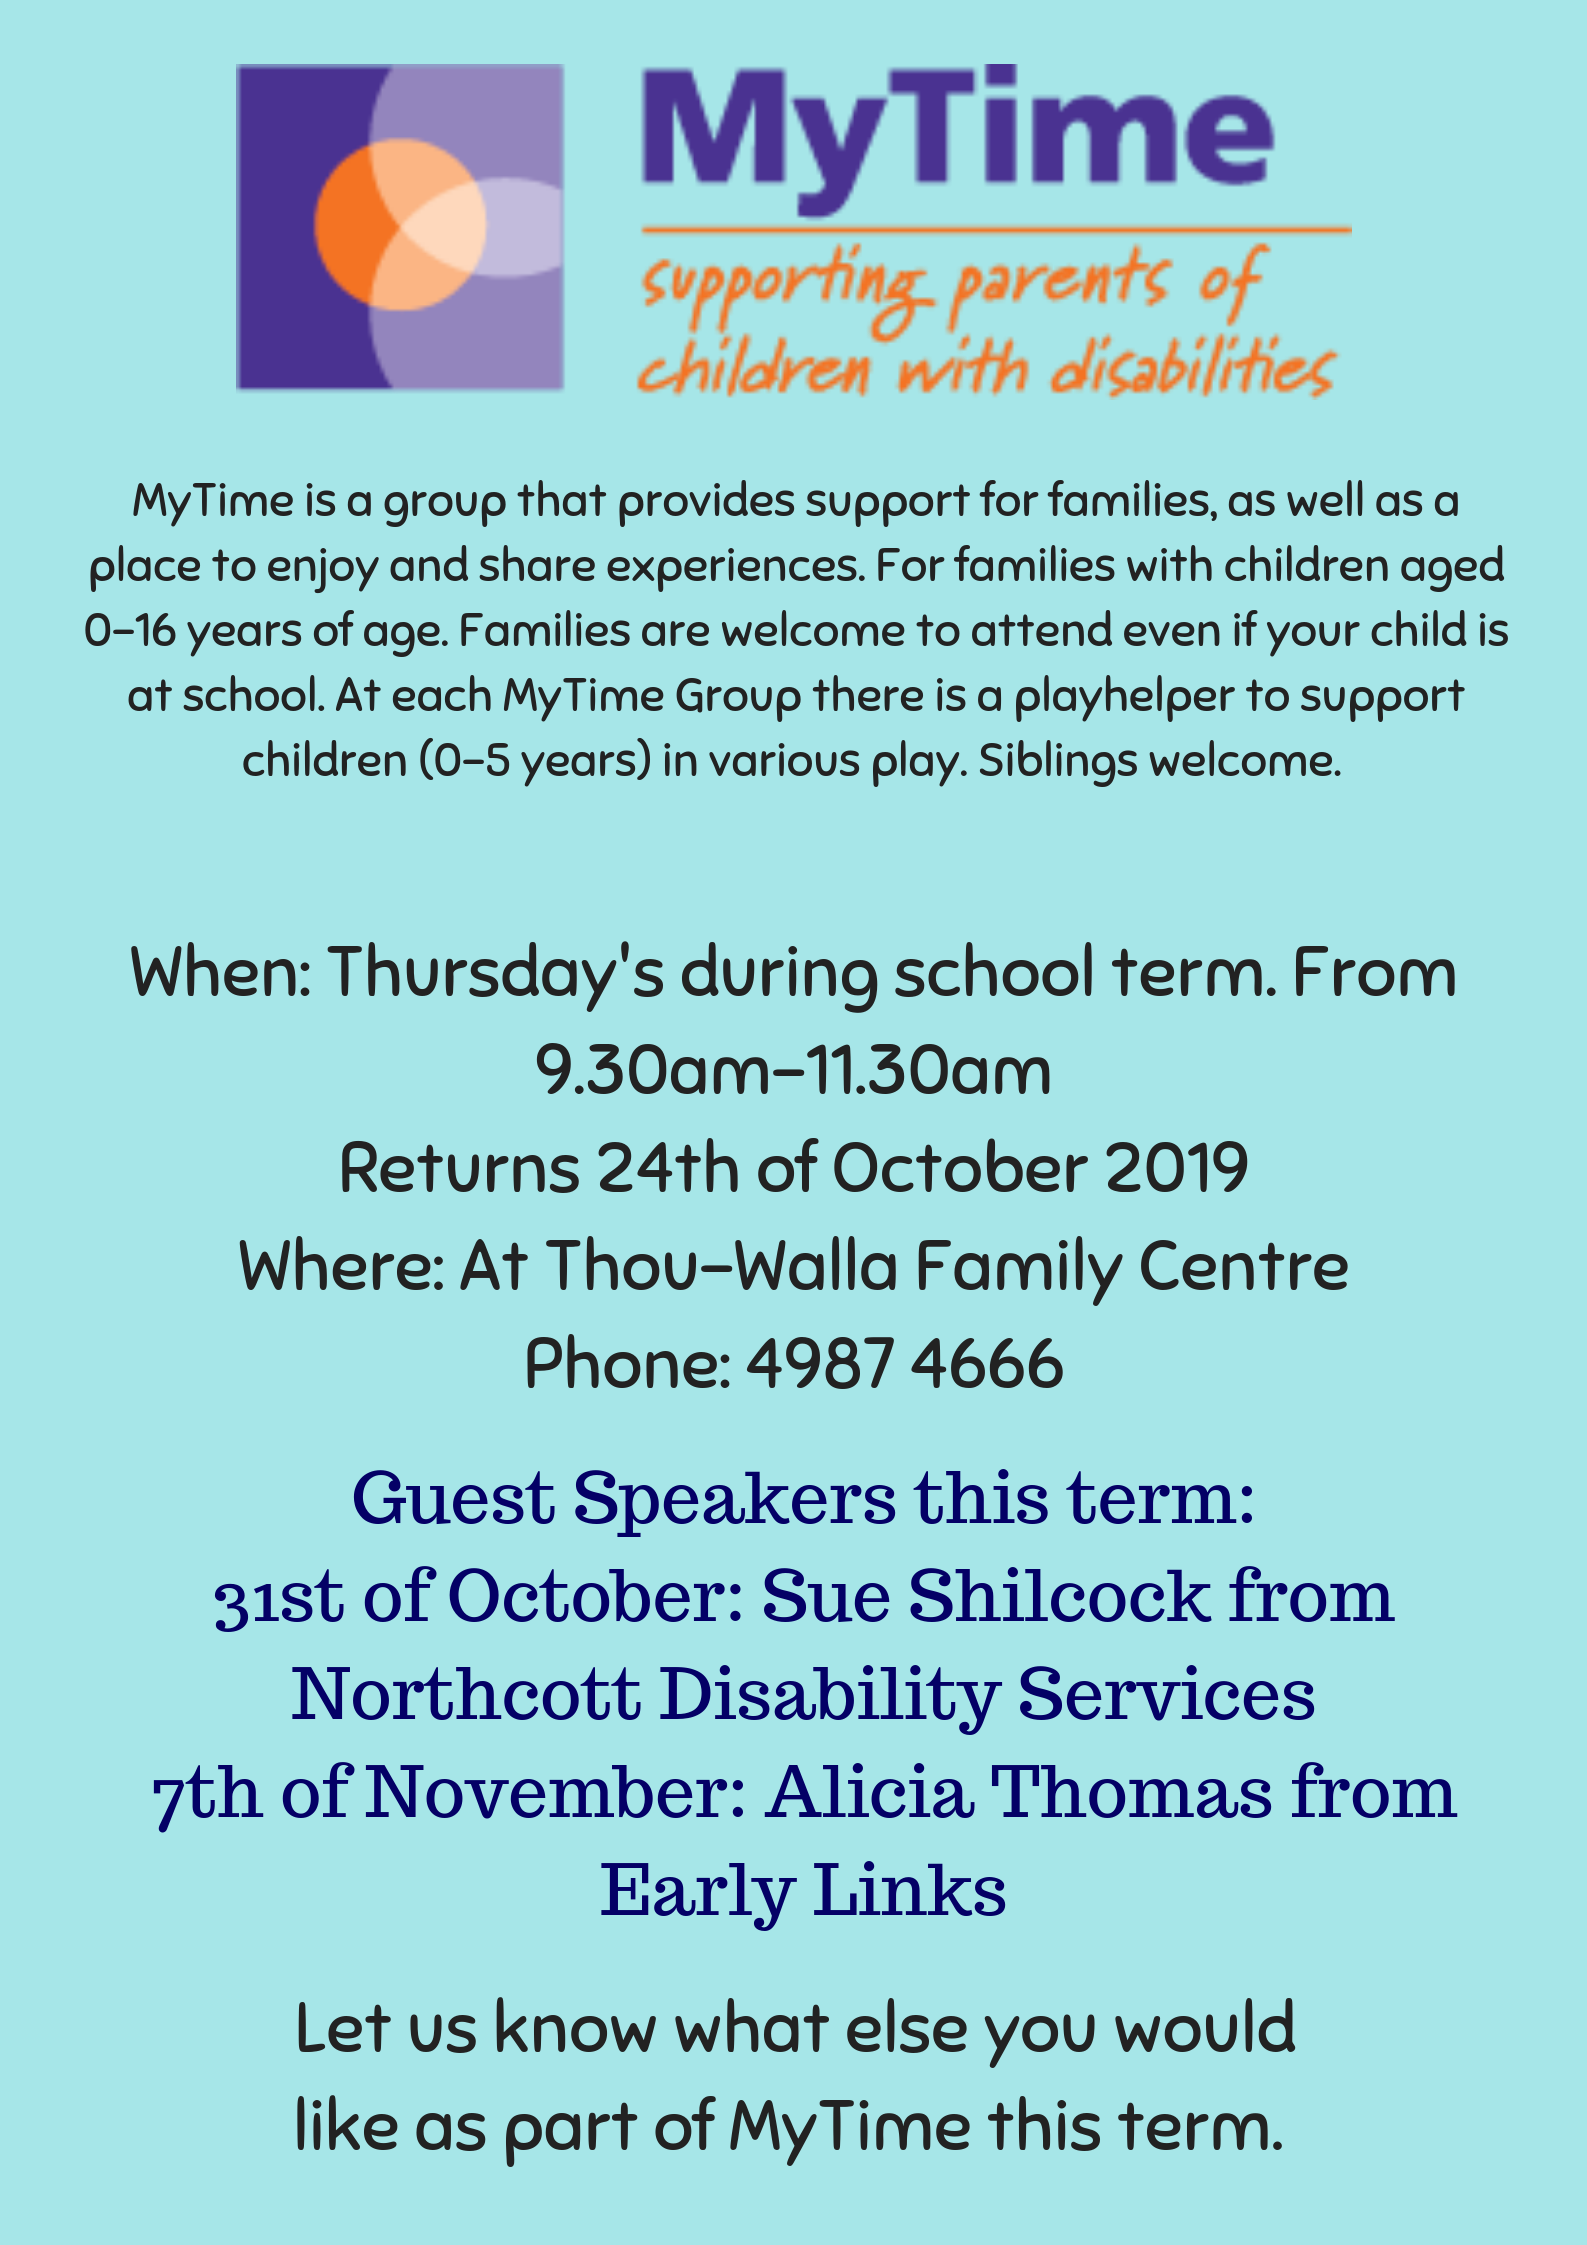 MyTime is a group that provides support for families, as well as a place to enjoy and share experiences. For families with children aged 0-16 years of age. Families are welcome to attend even if your child is at sch